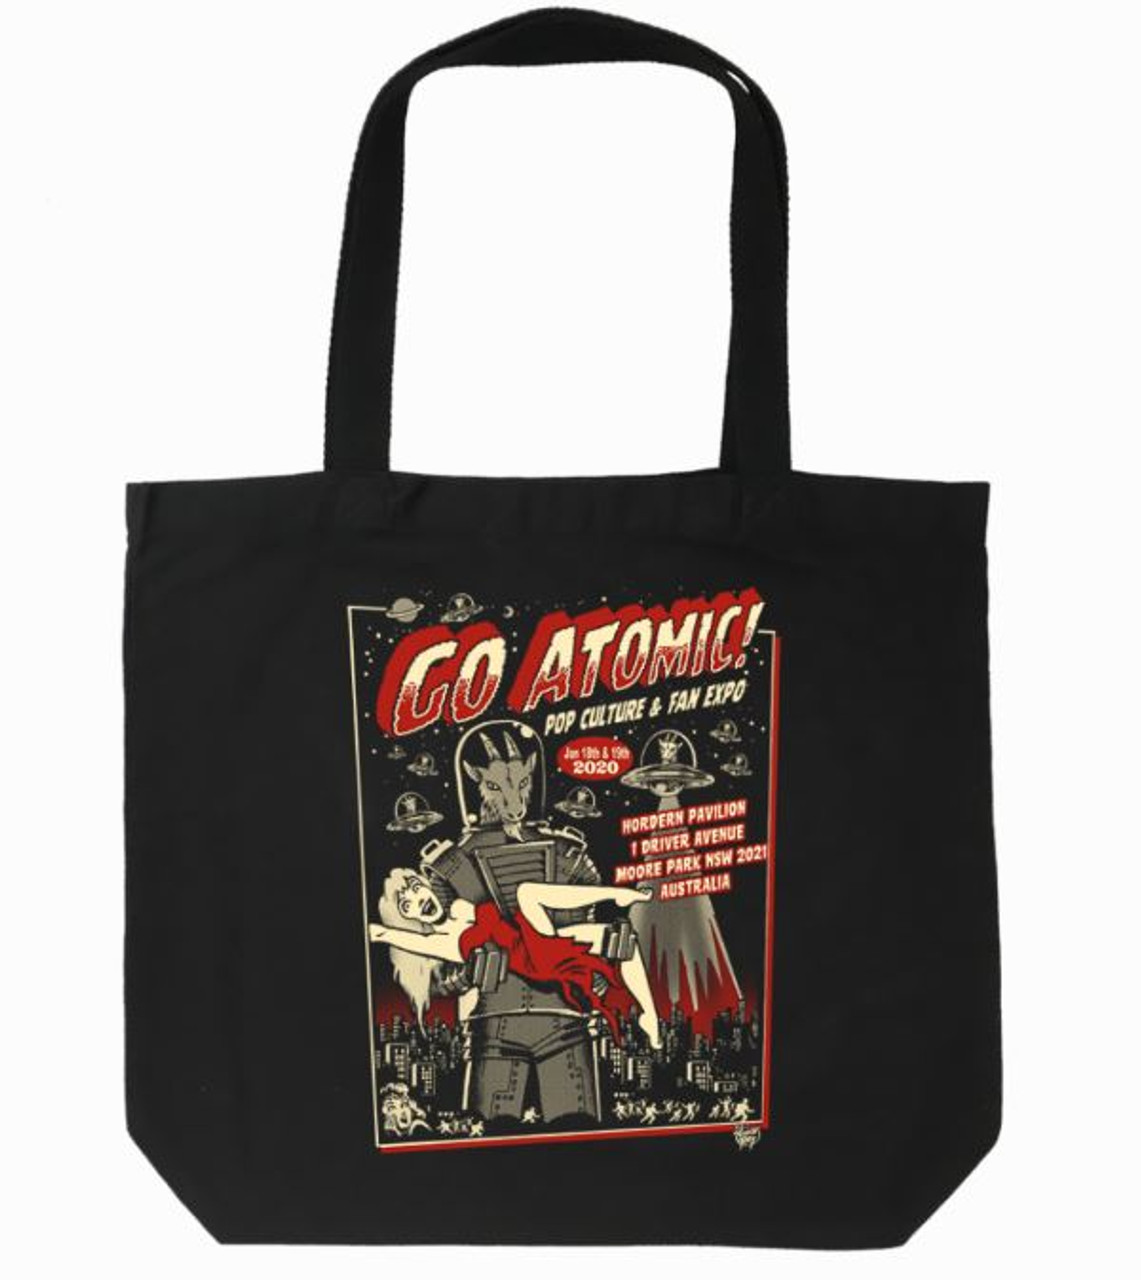 Go Atomic! Tote Bag